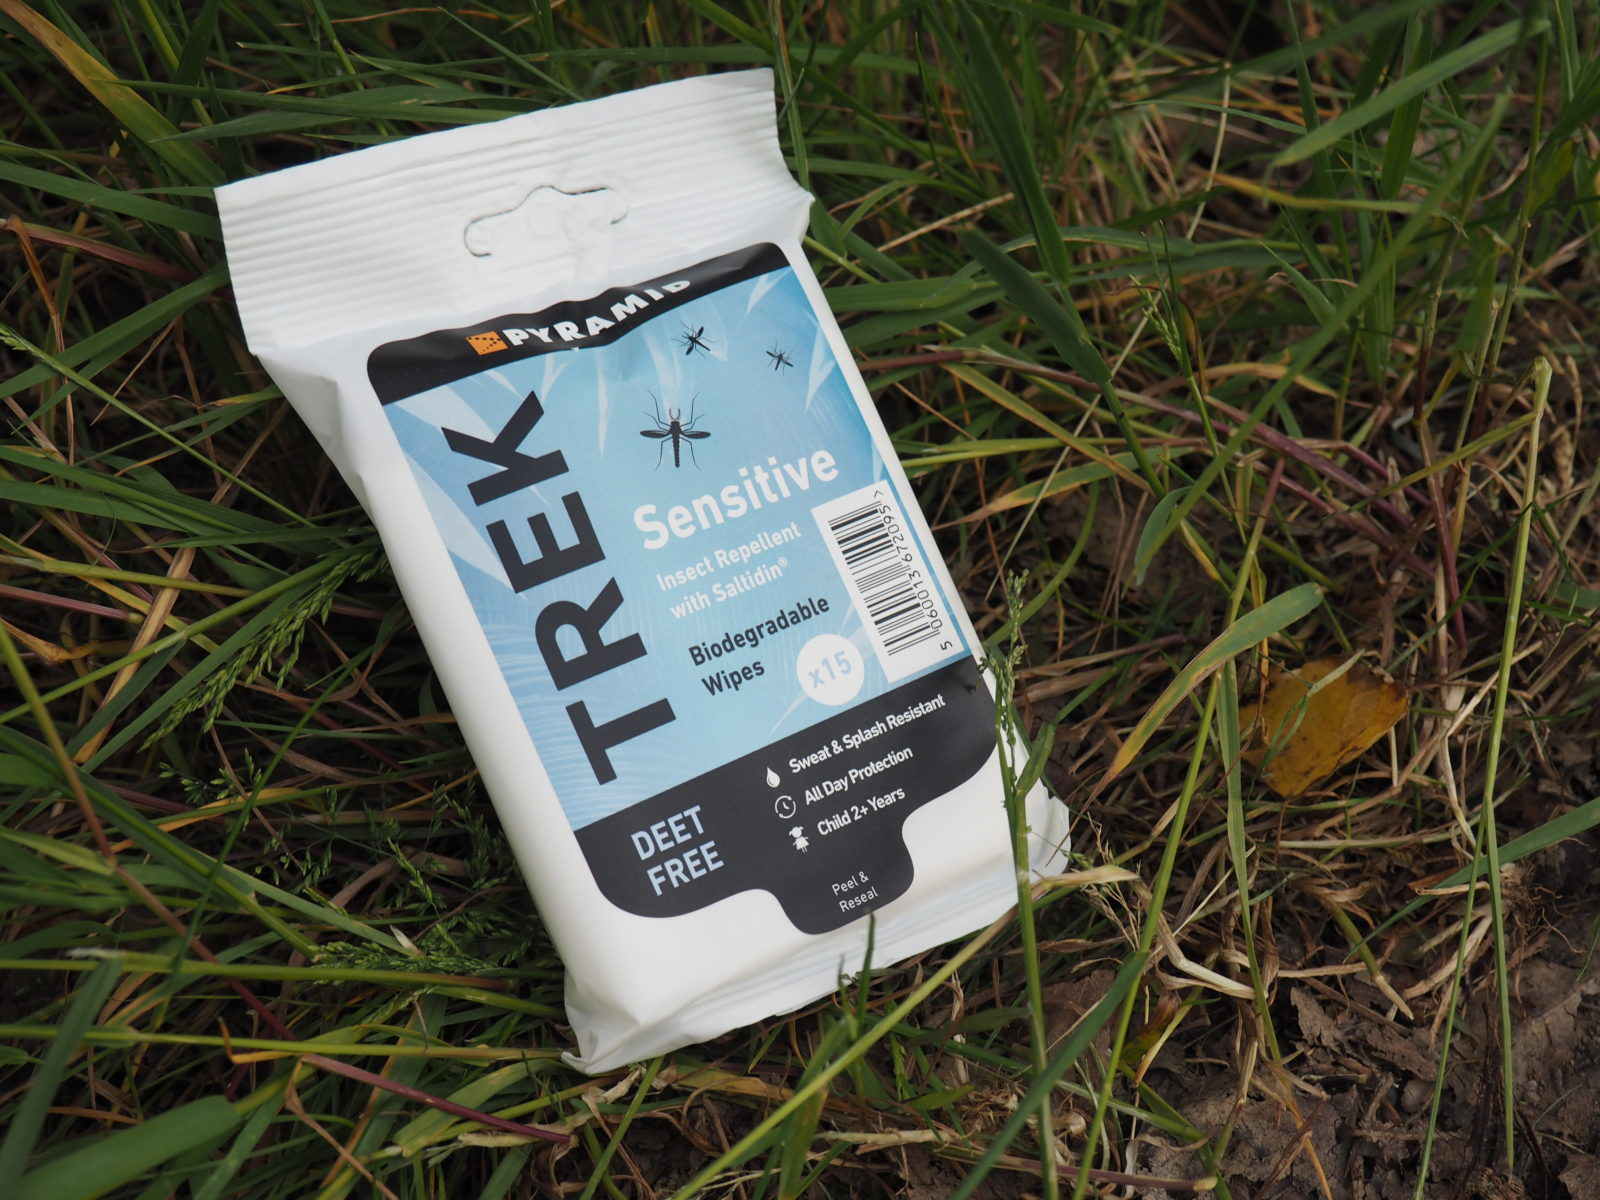 Protecting our family with Trek Sensitive Insect Repellent Wipes #Ad